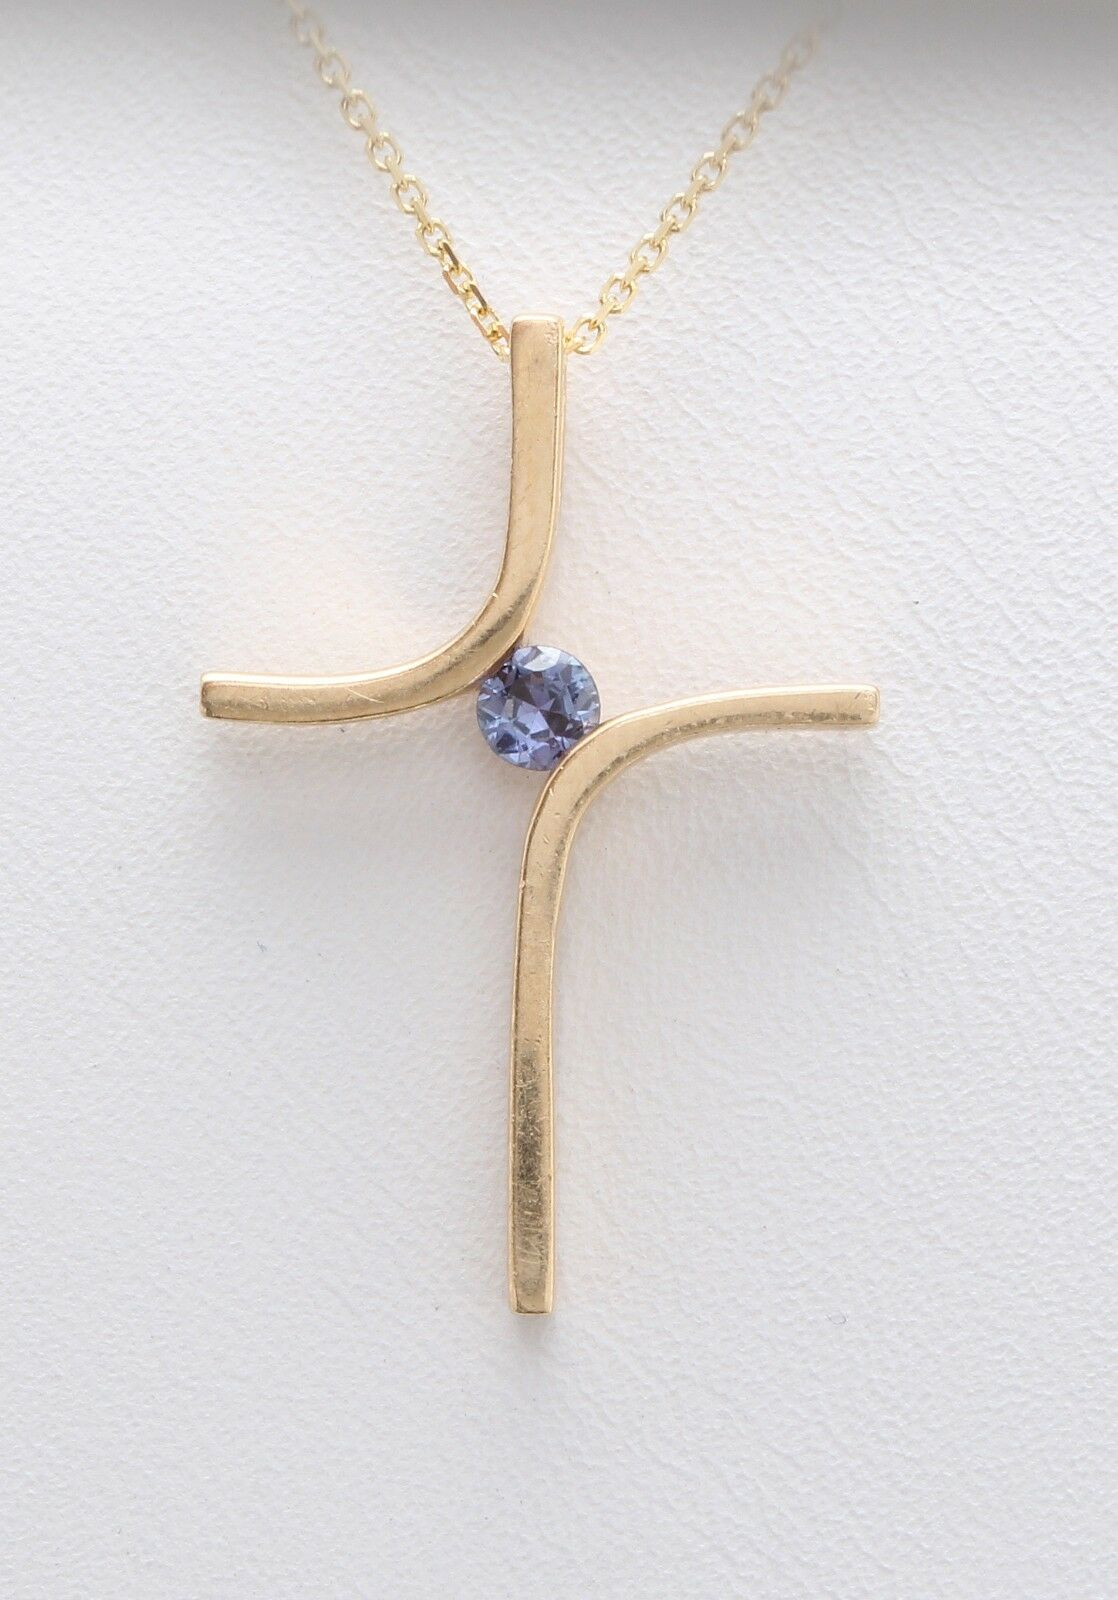 0.13Ct Natural bluee Sapphire in 14K Solid Yellow gold Pendant